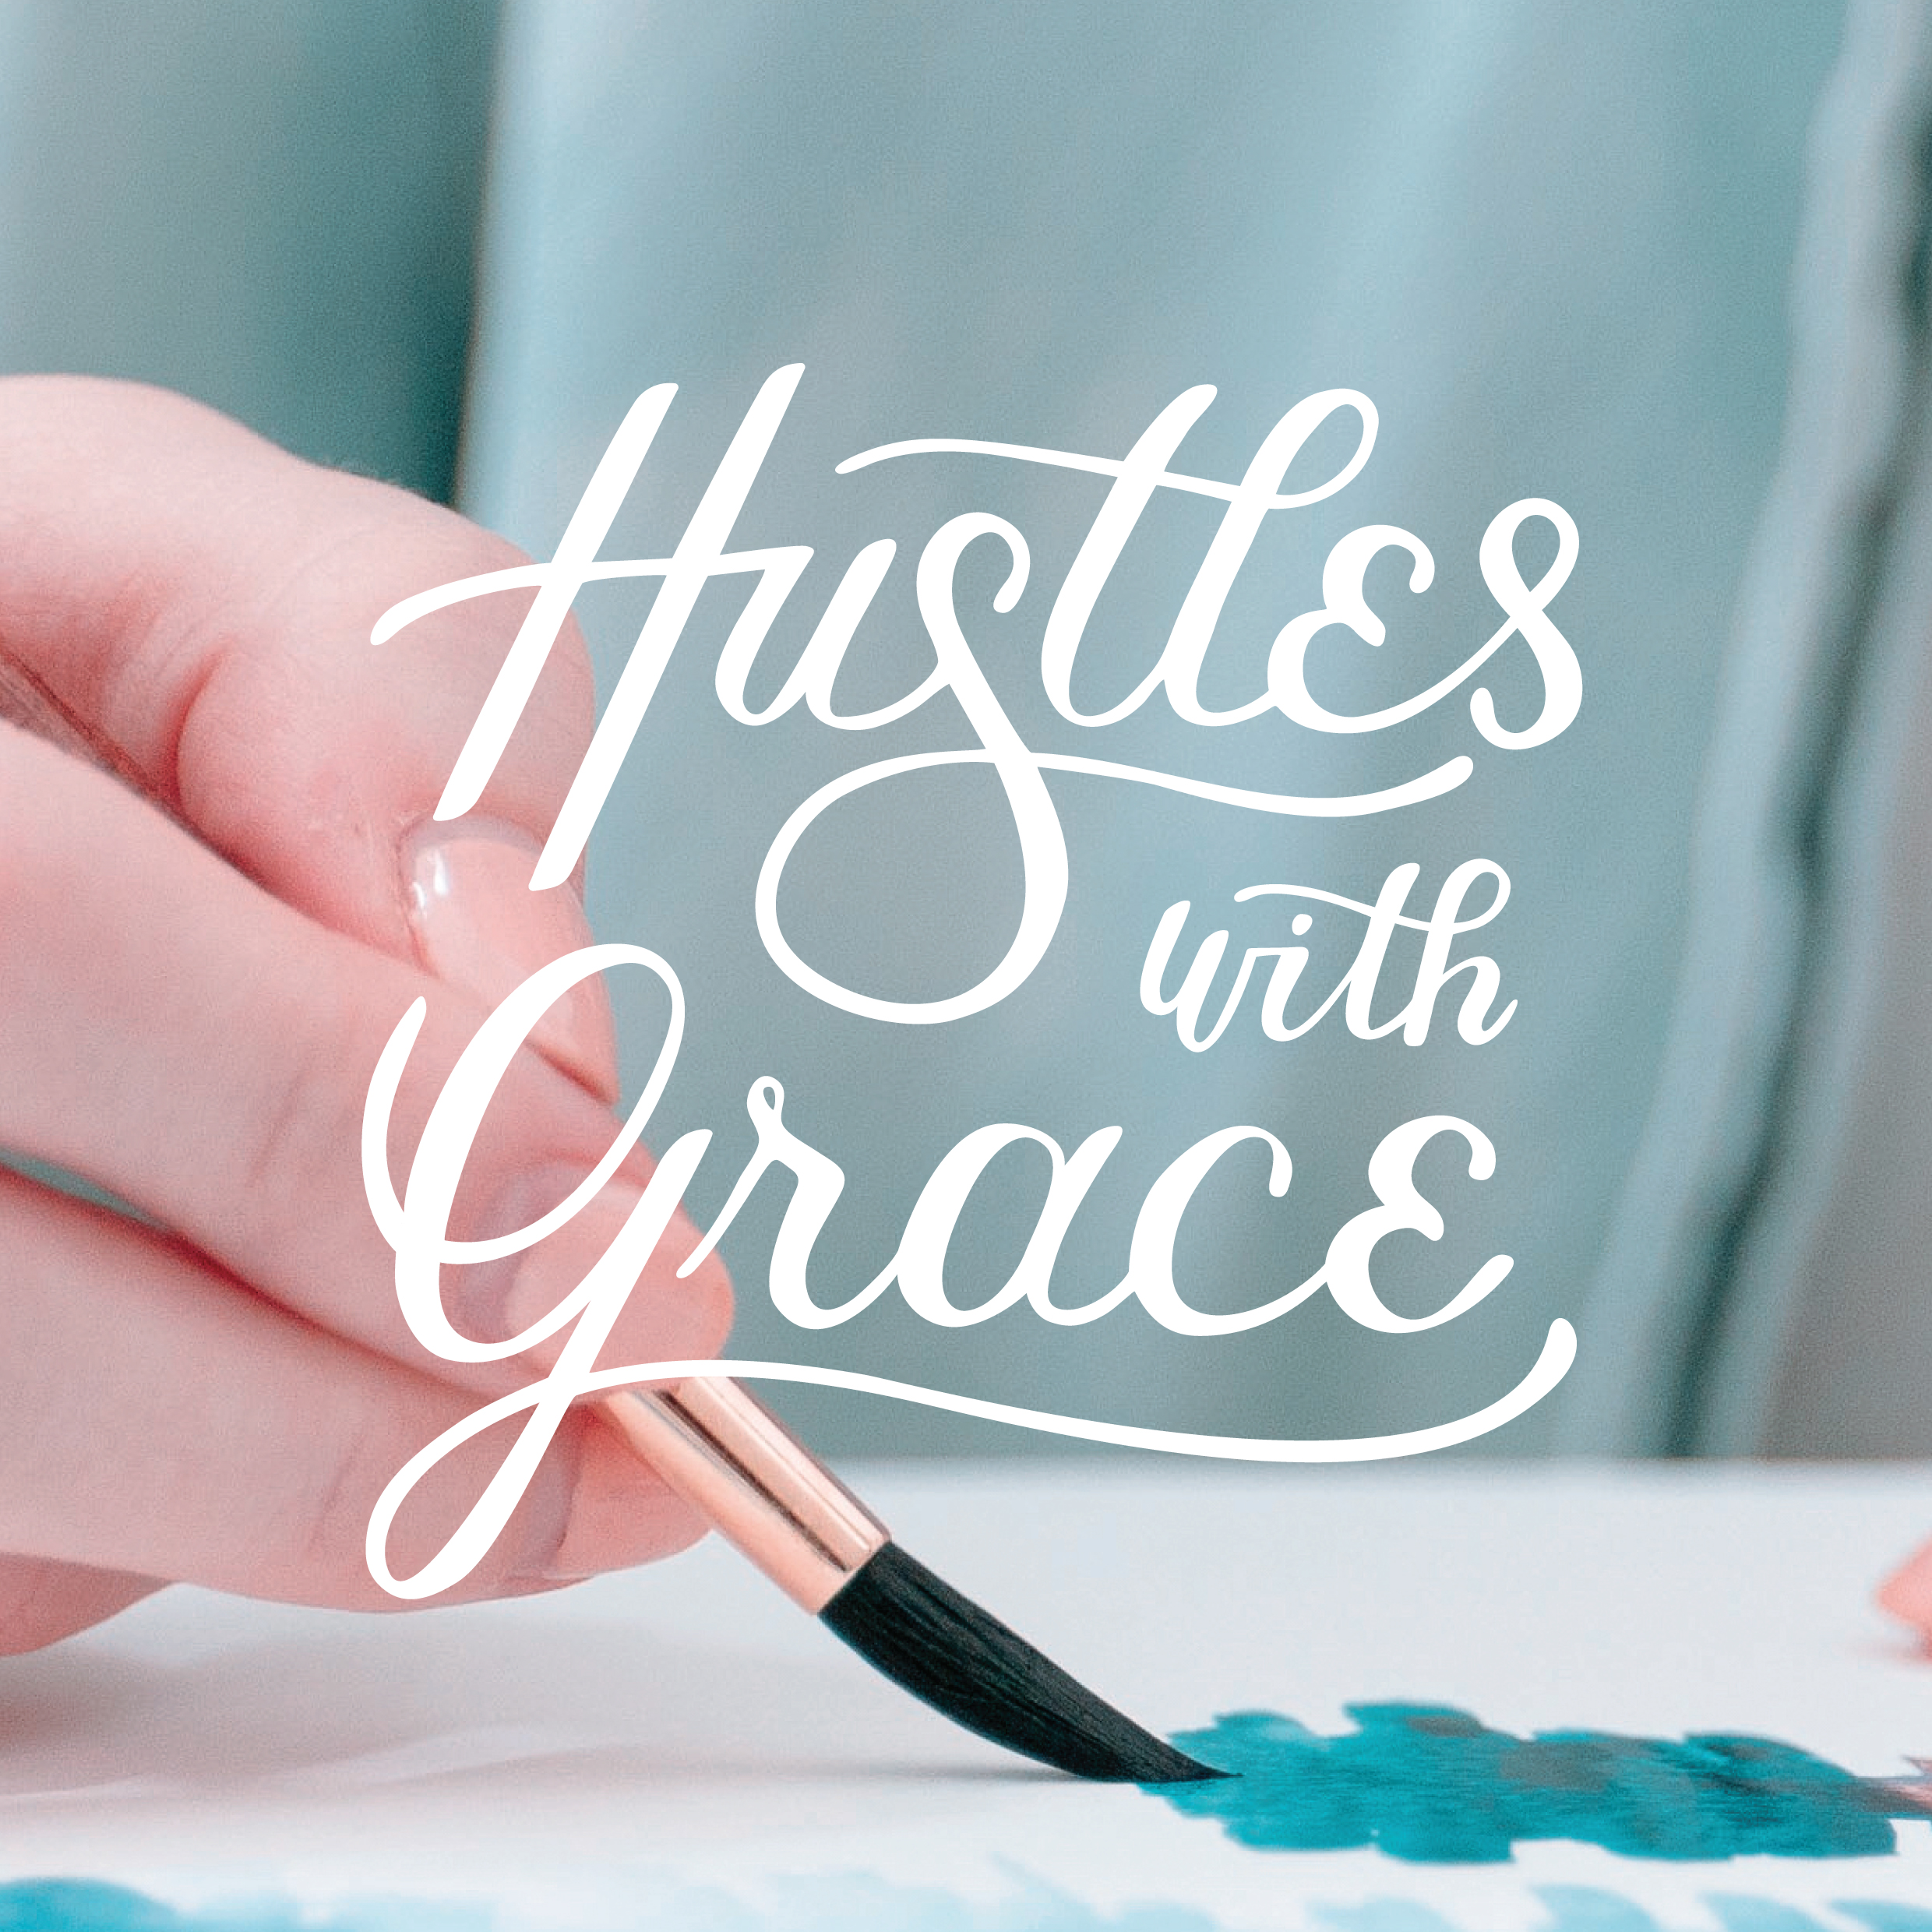 Hustles-with-Grace copy.jpg